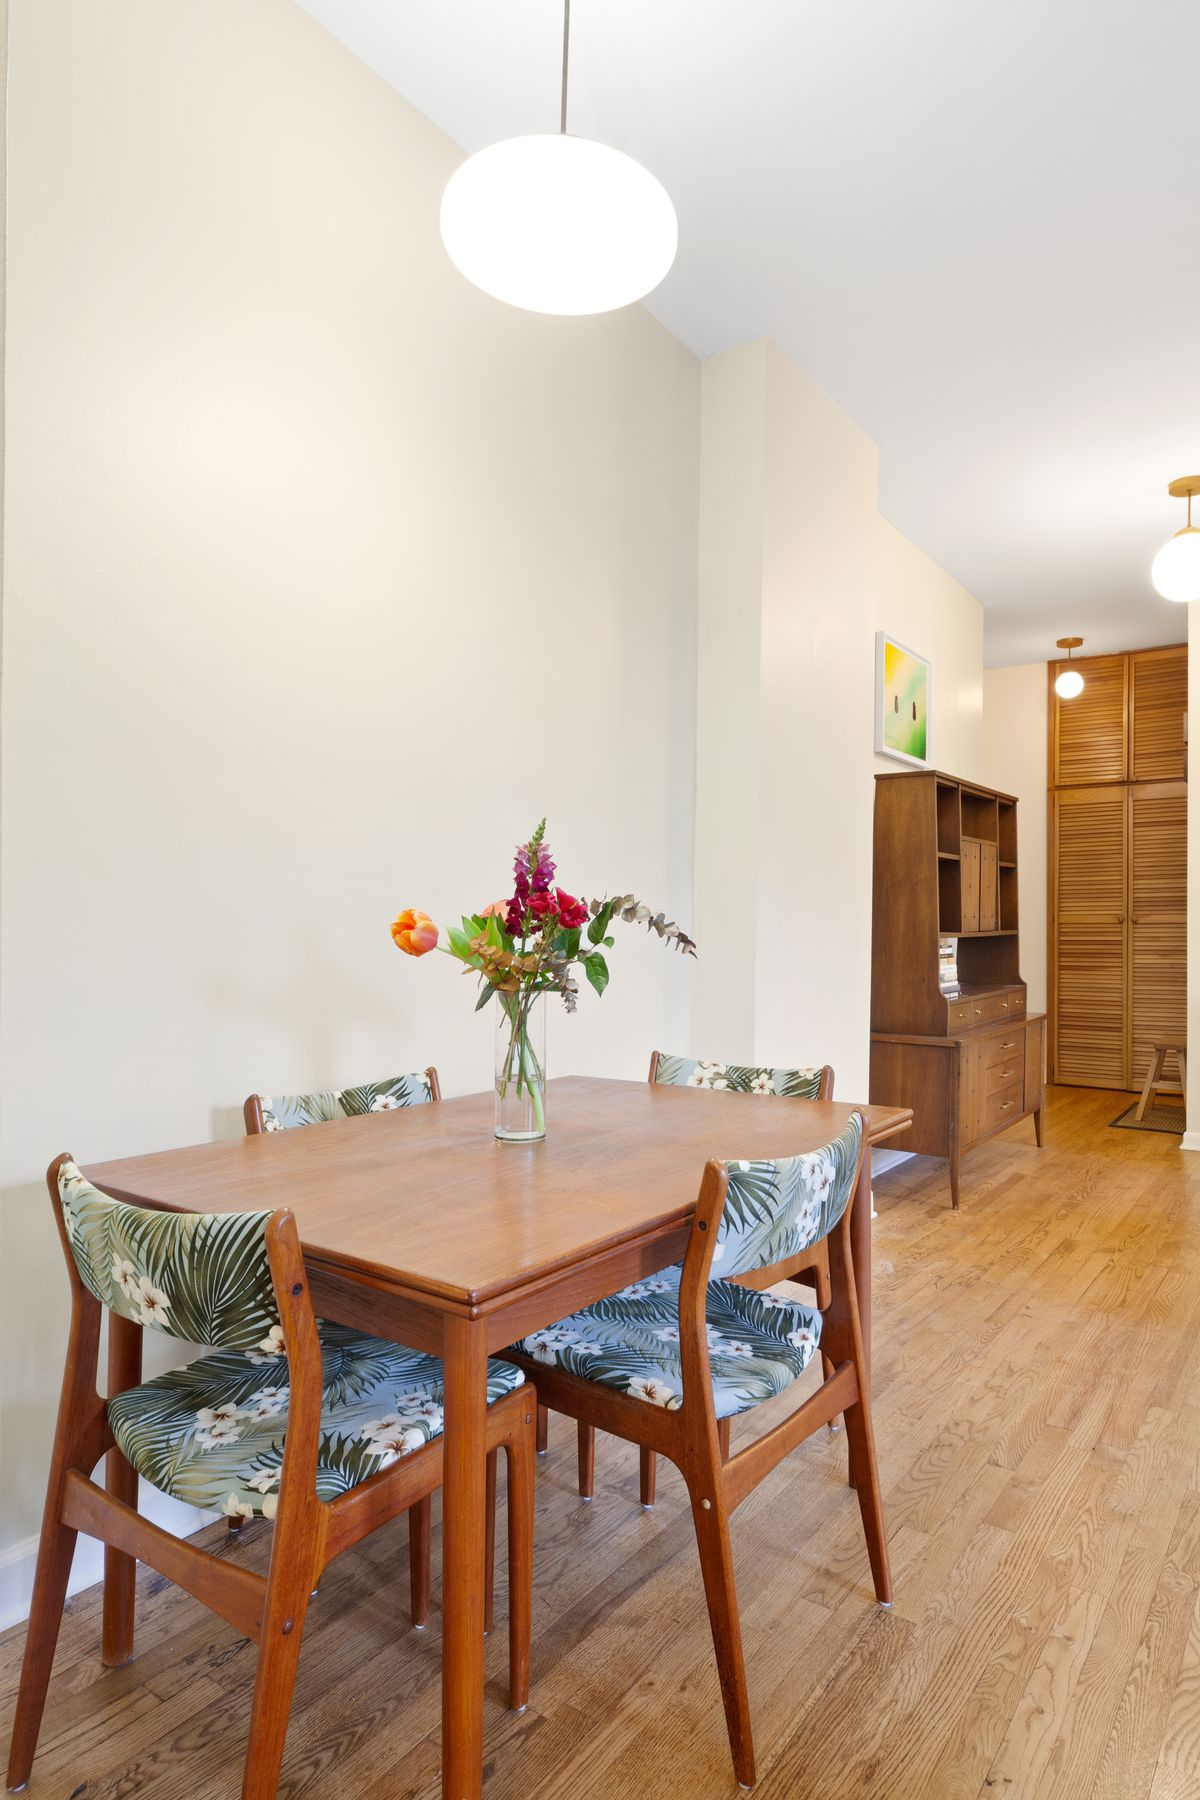 A dining area with a small table, four chairs, beige walls, and hardwood floors.